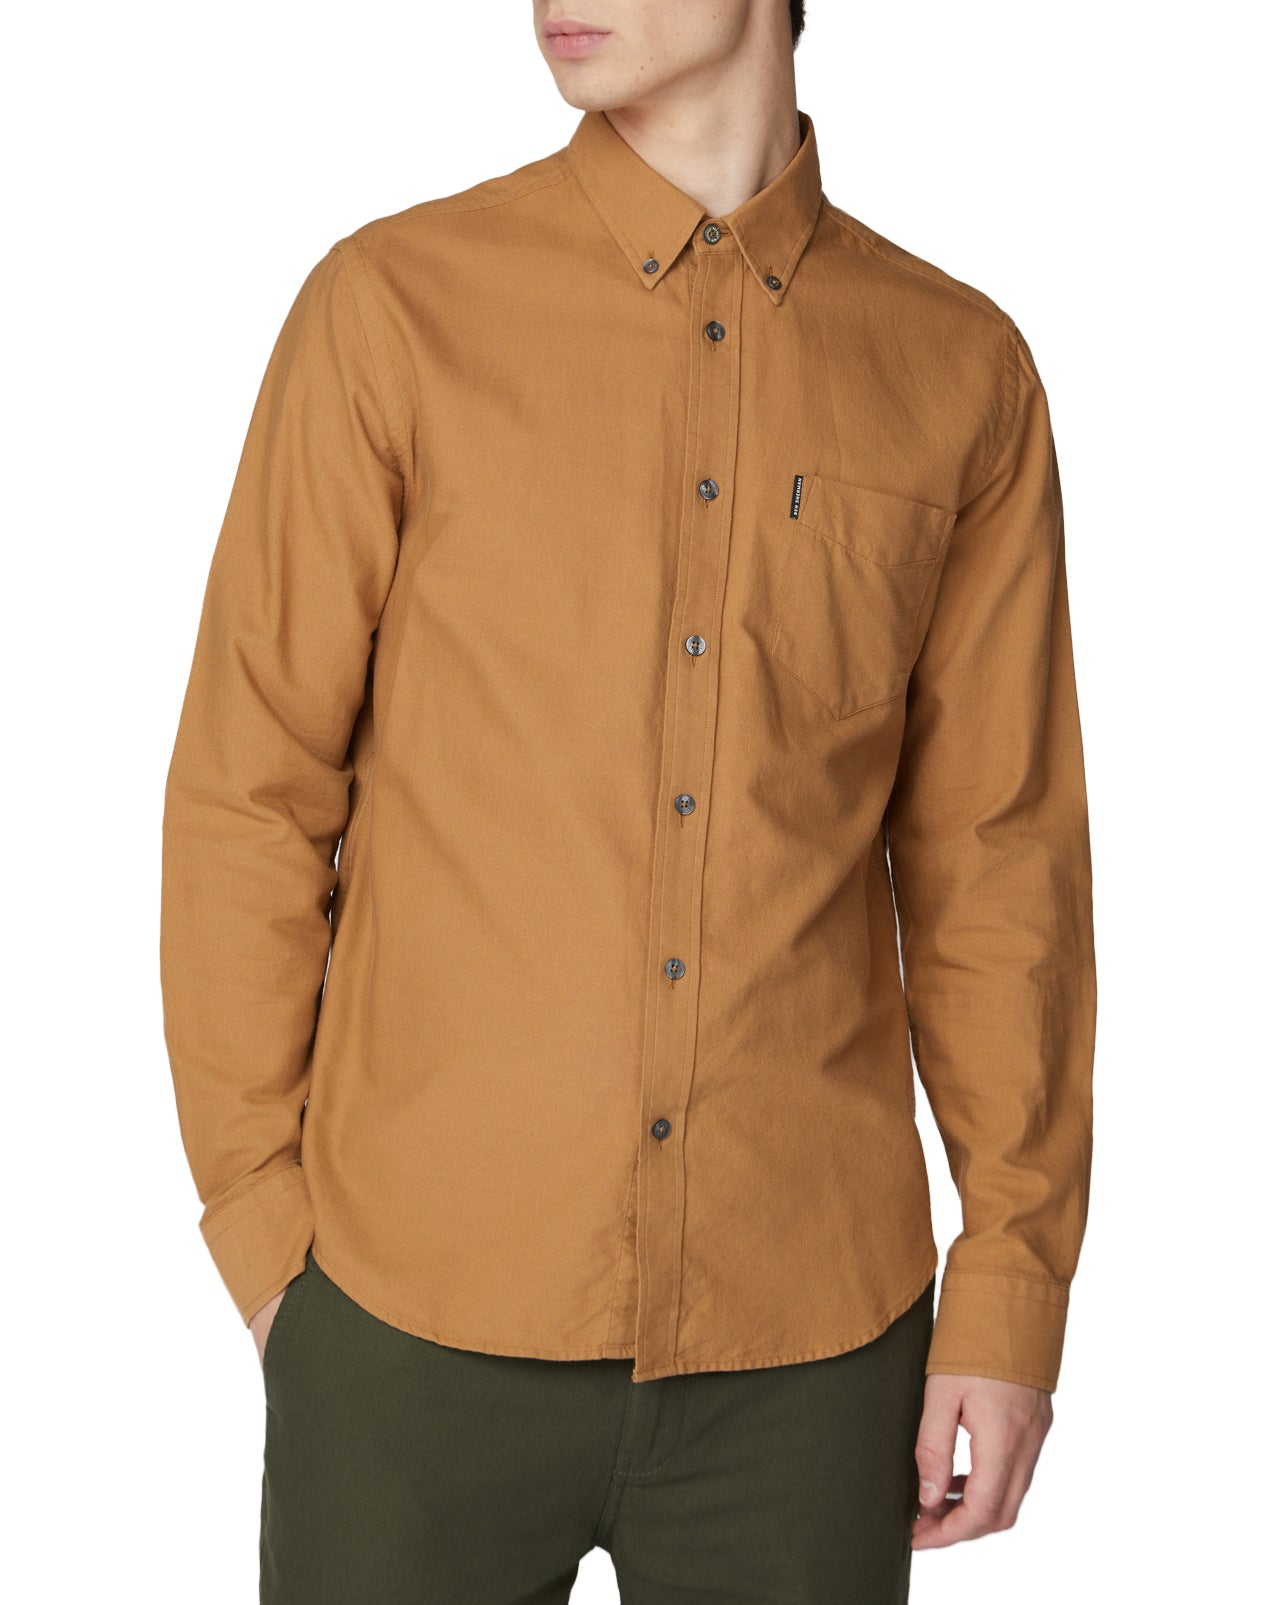 Long-Sleeve Core Oxford Shirt - Camel